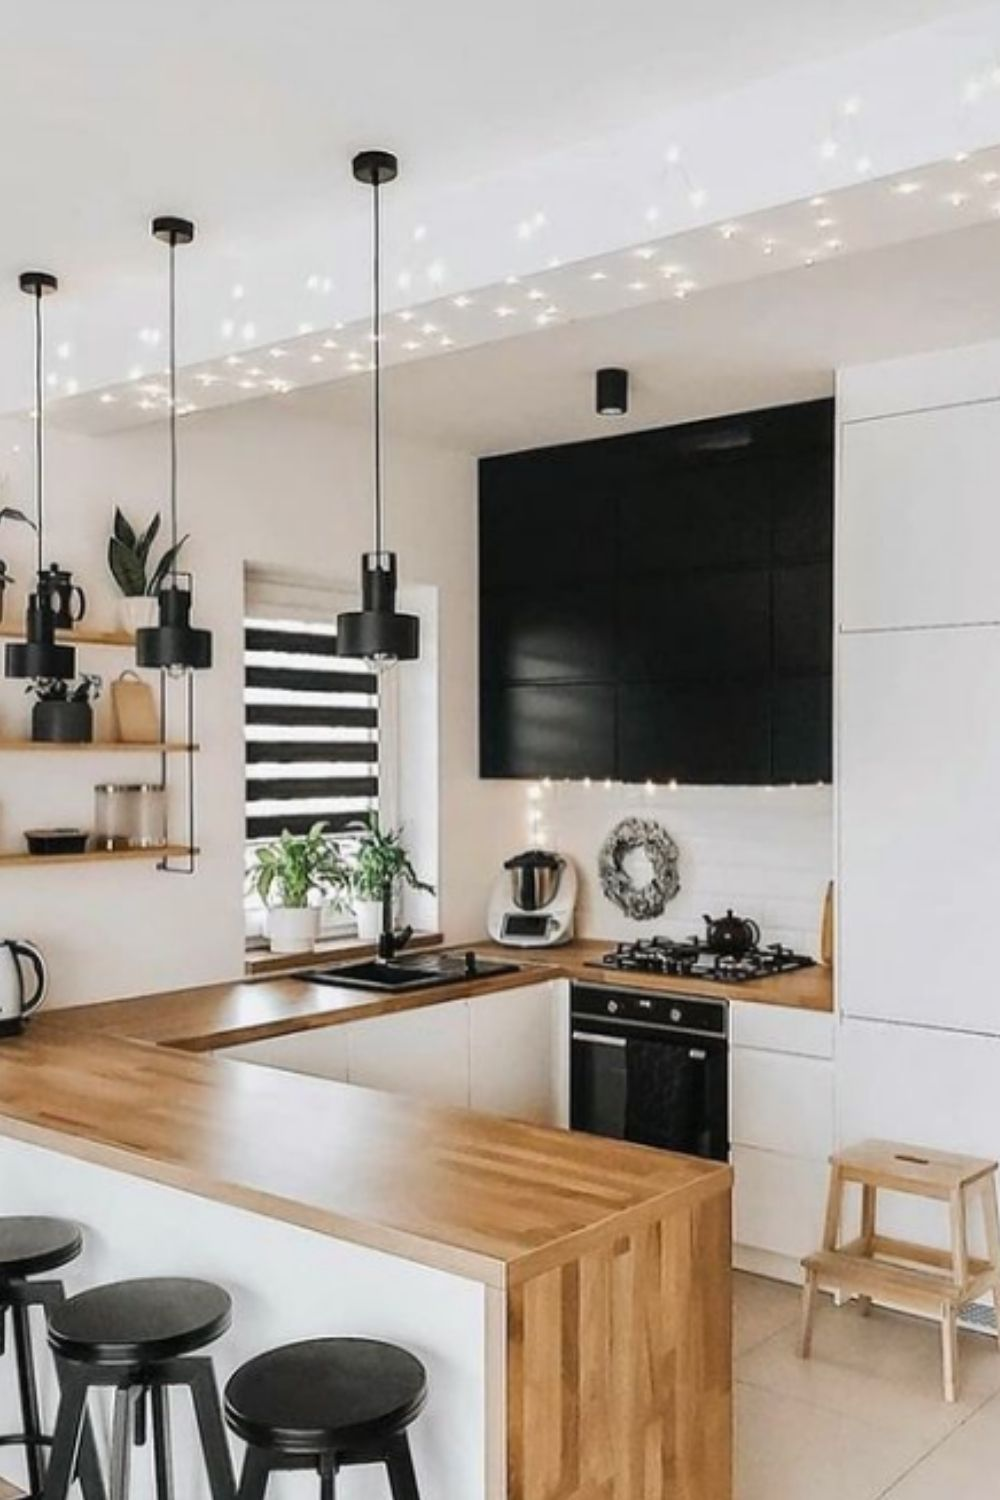 Great kitchen cabinet ideas on a budget for youngs' home